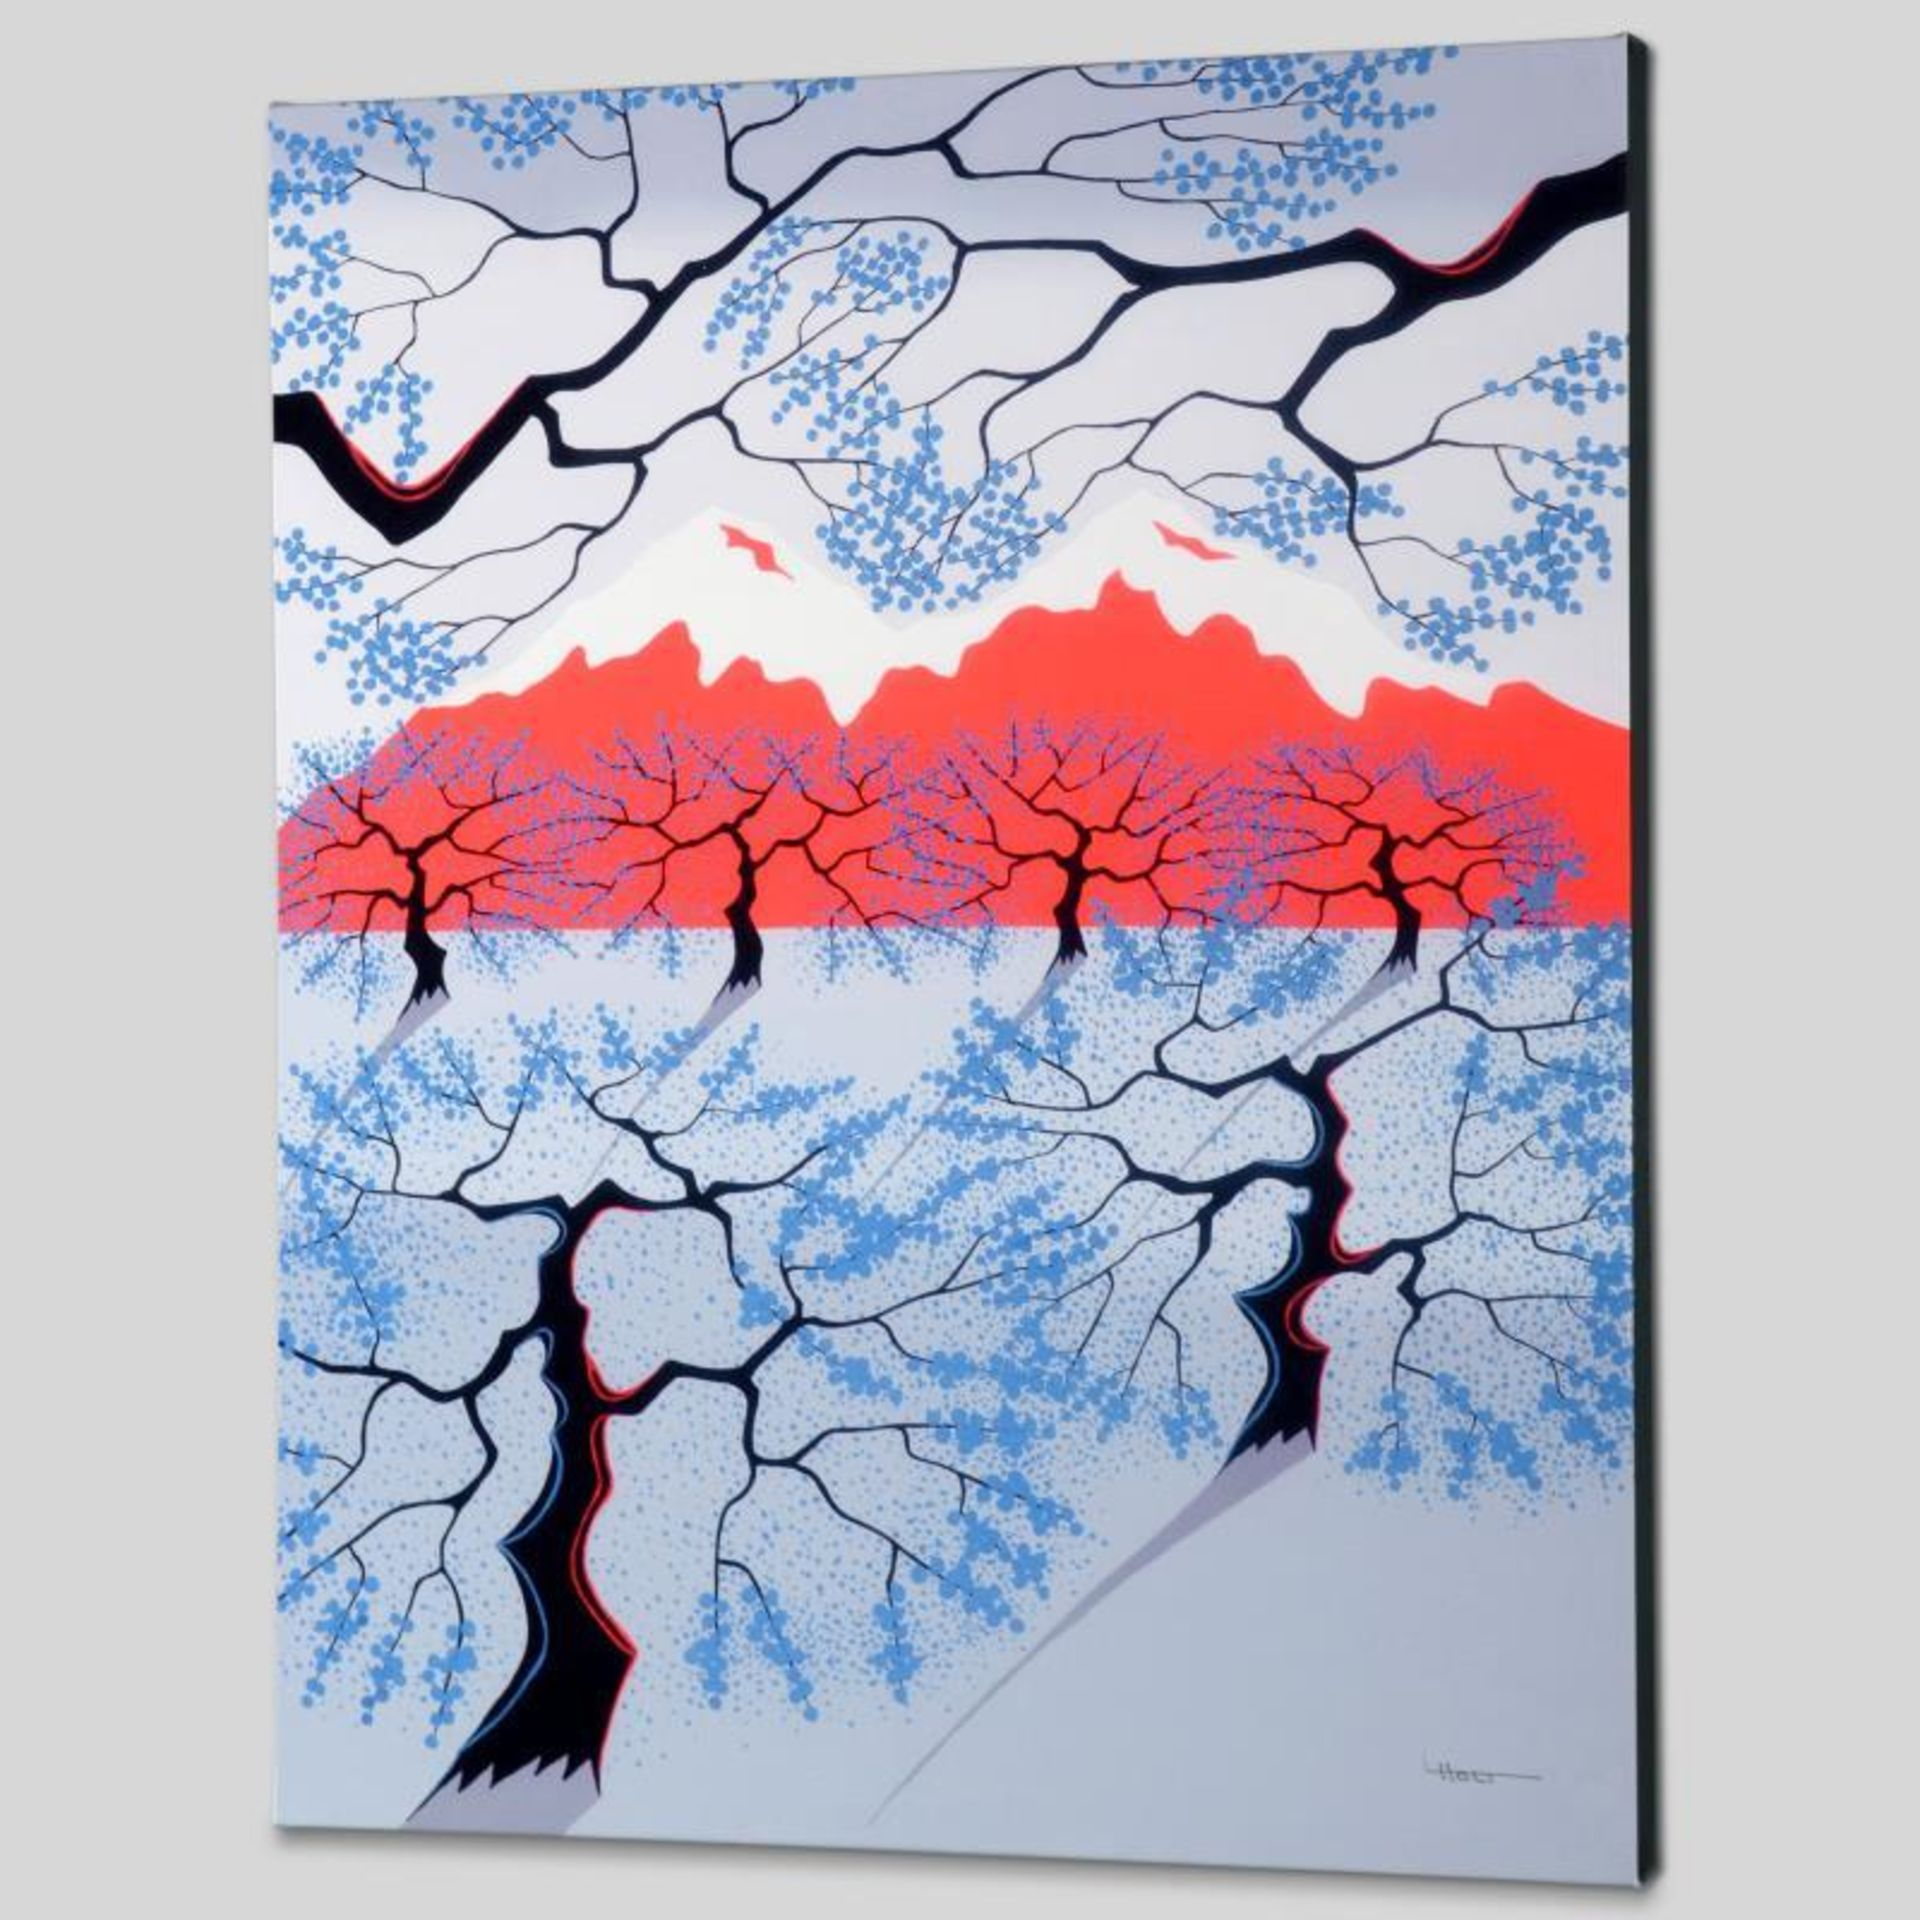 Red Mountains by Holt, Larissa - Image 2 of 2